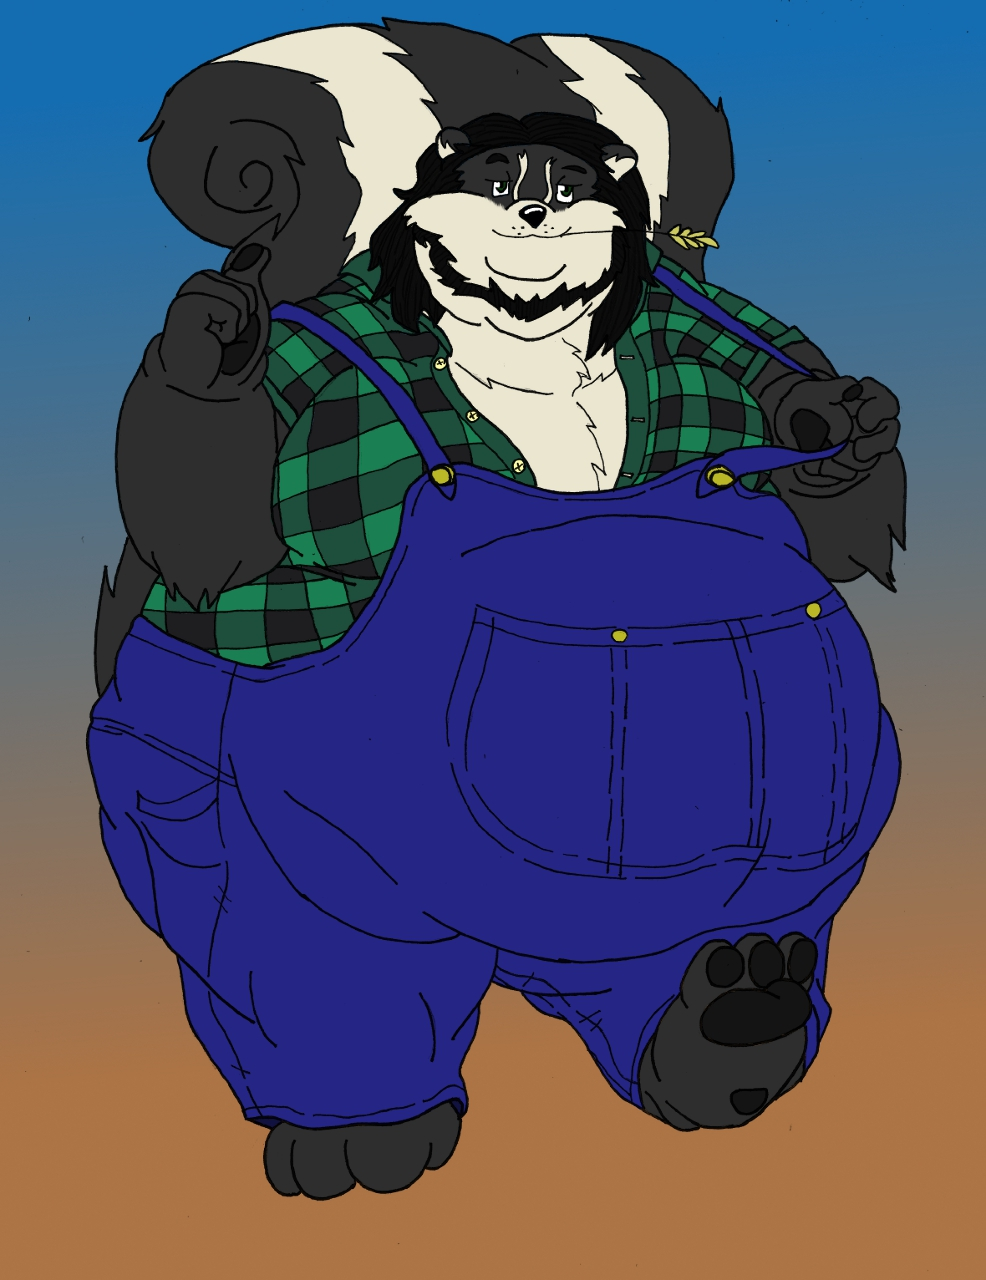 Most recent image: Jus' a Big Ole Hunk of Skunk